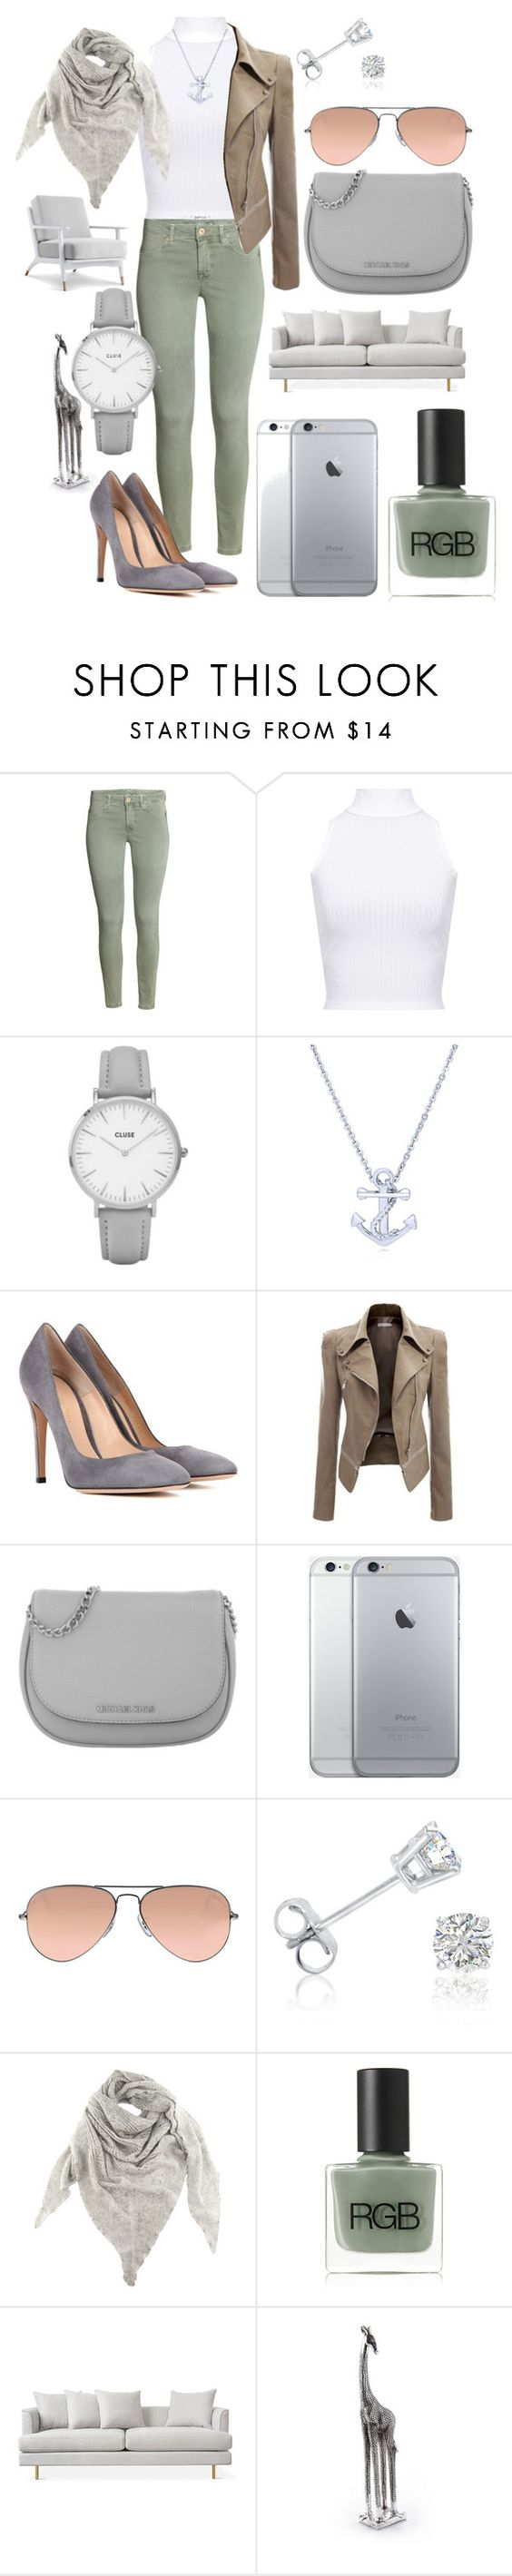 """Alex's design."" by elizabethfrey ❤ liked on Polyvore featuring WearAll, Topshop, BERRICLE, Gianvito Rossi, Michael Kors, Ray-Ban, Amanda Rose Collection, Black, RGB and Puji"